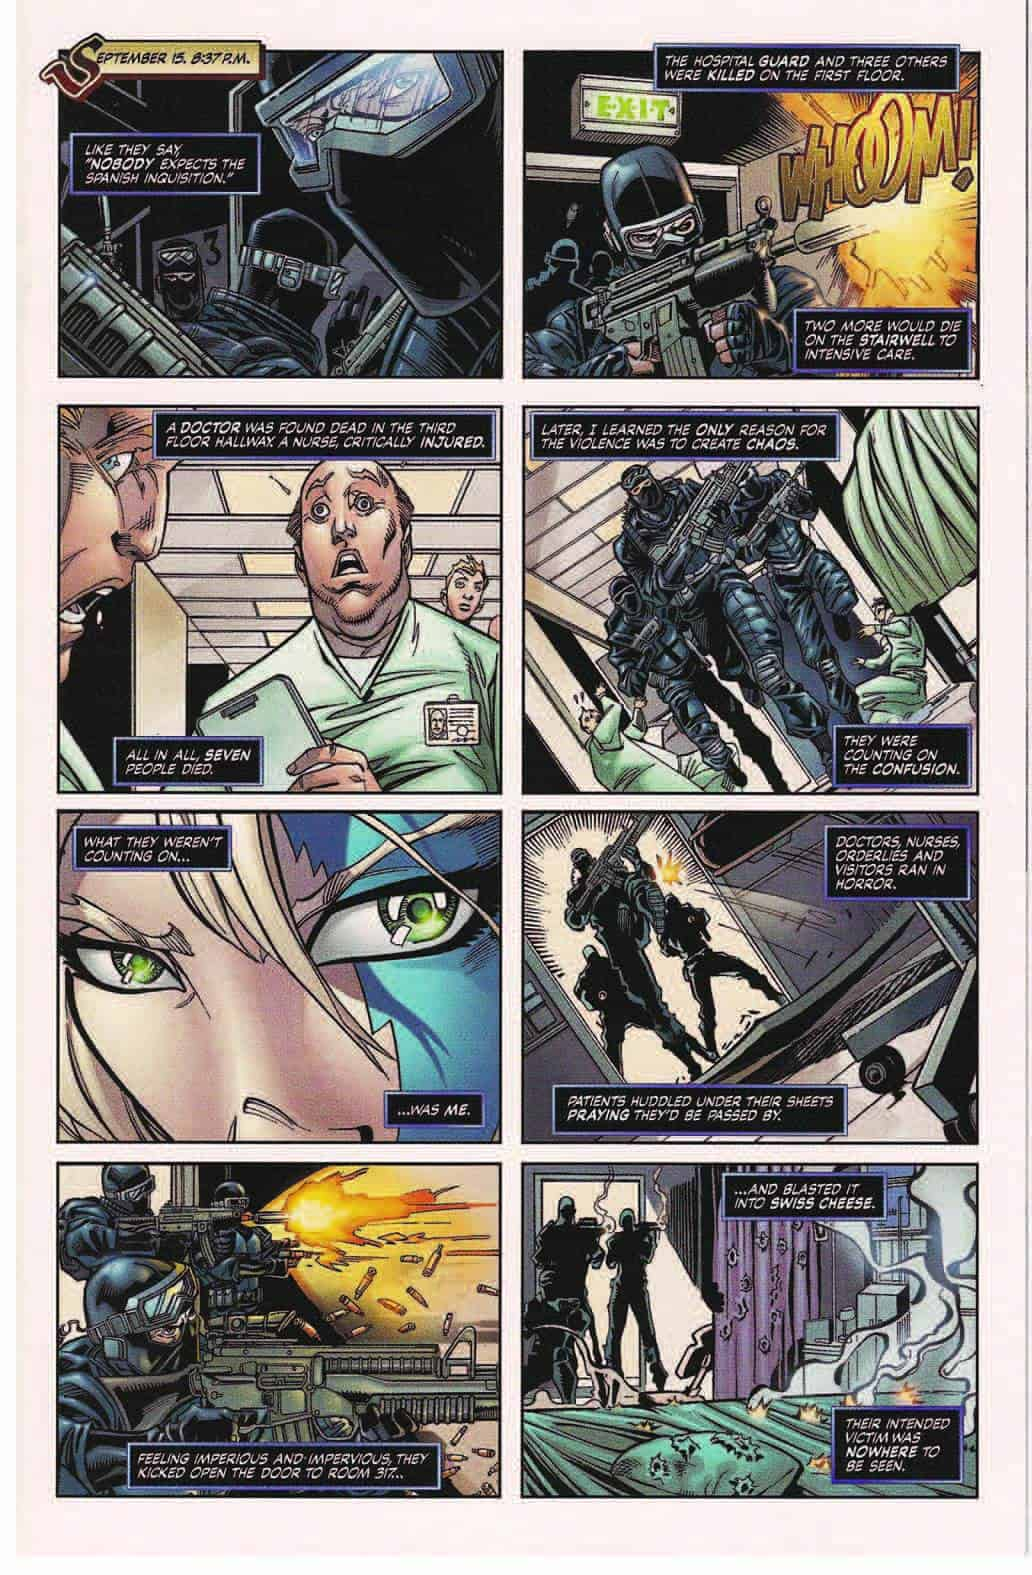 10th-Muse-Vol-1-the-Image-Comics-Run-Part-1-Image-02